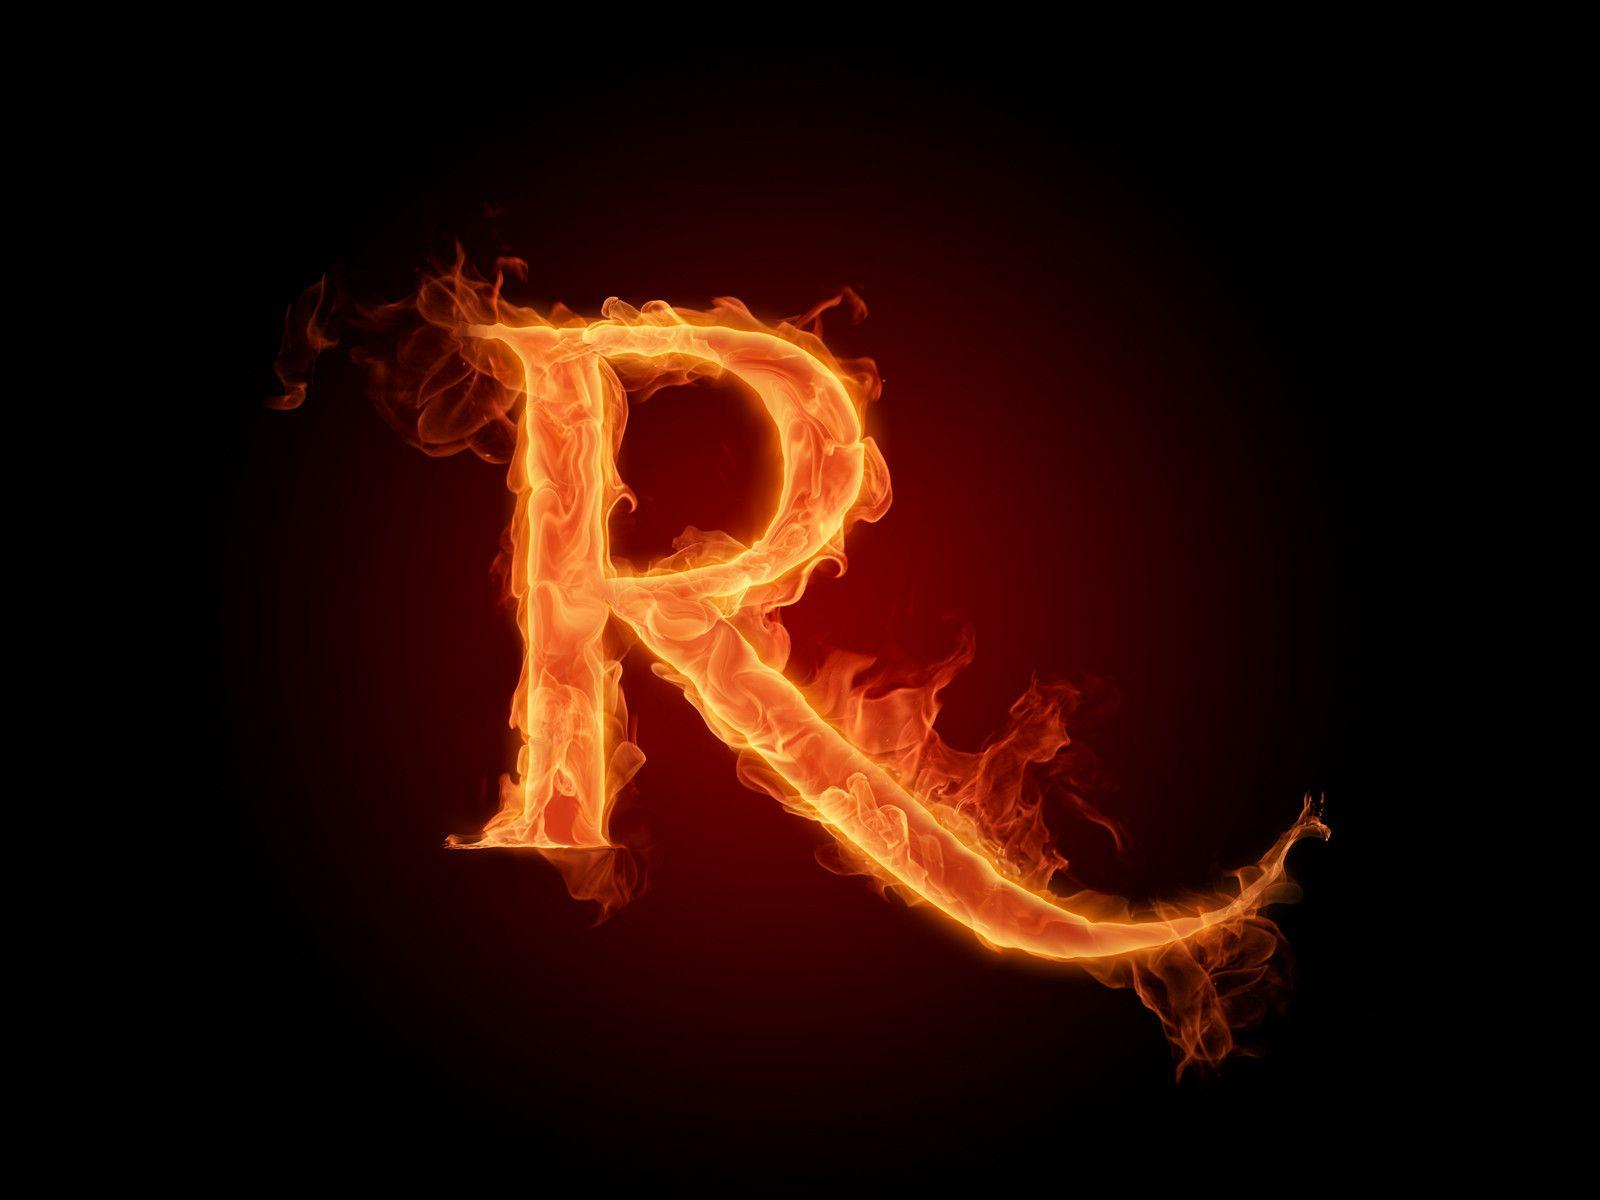 HD Fire Fonts - Fiery Letters and Fiery Numbers 1600x1200 NO.18 .